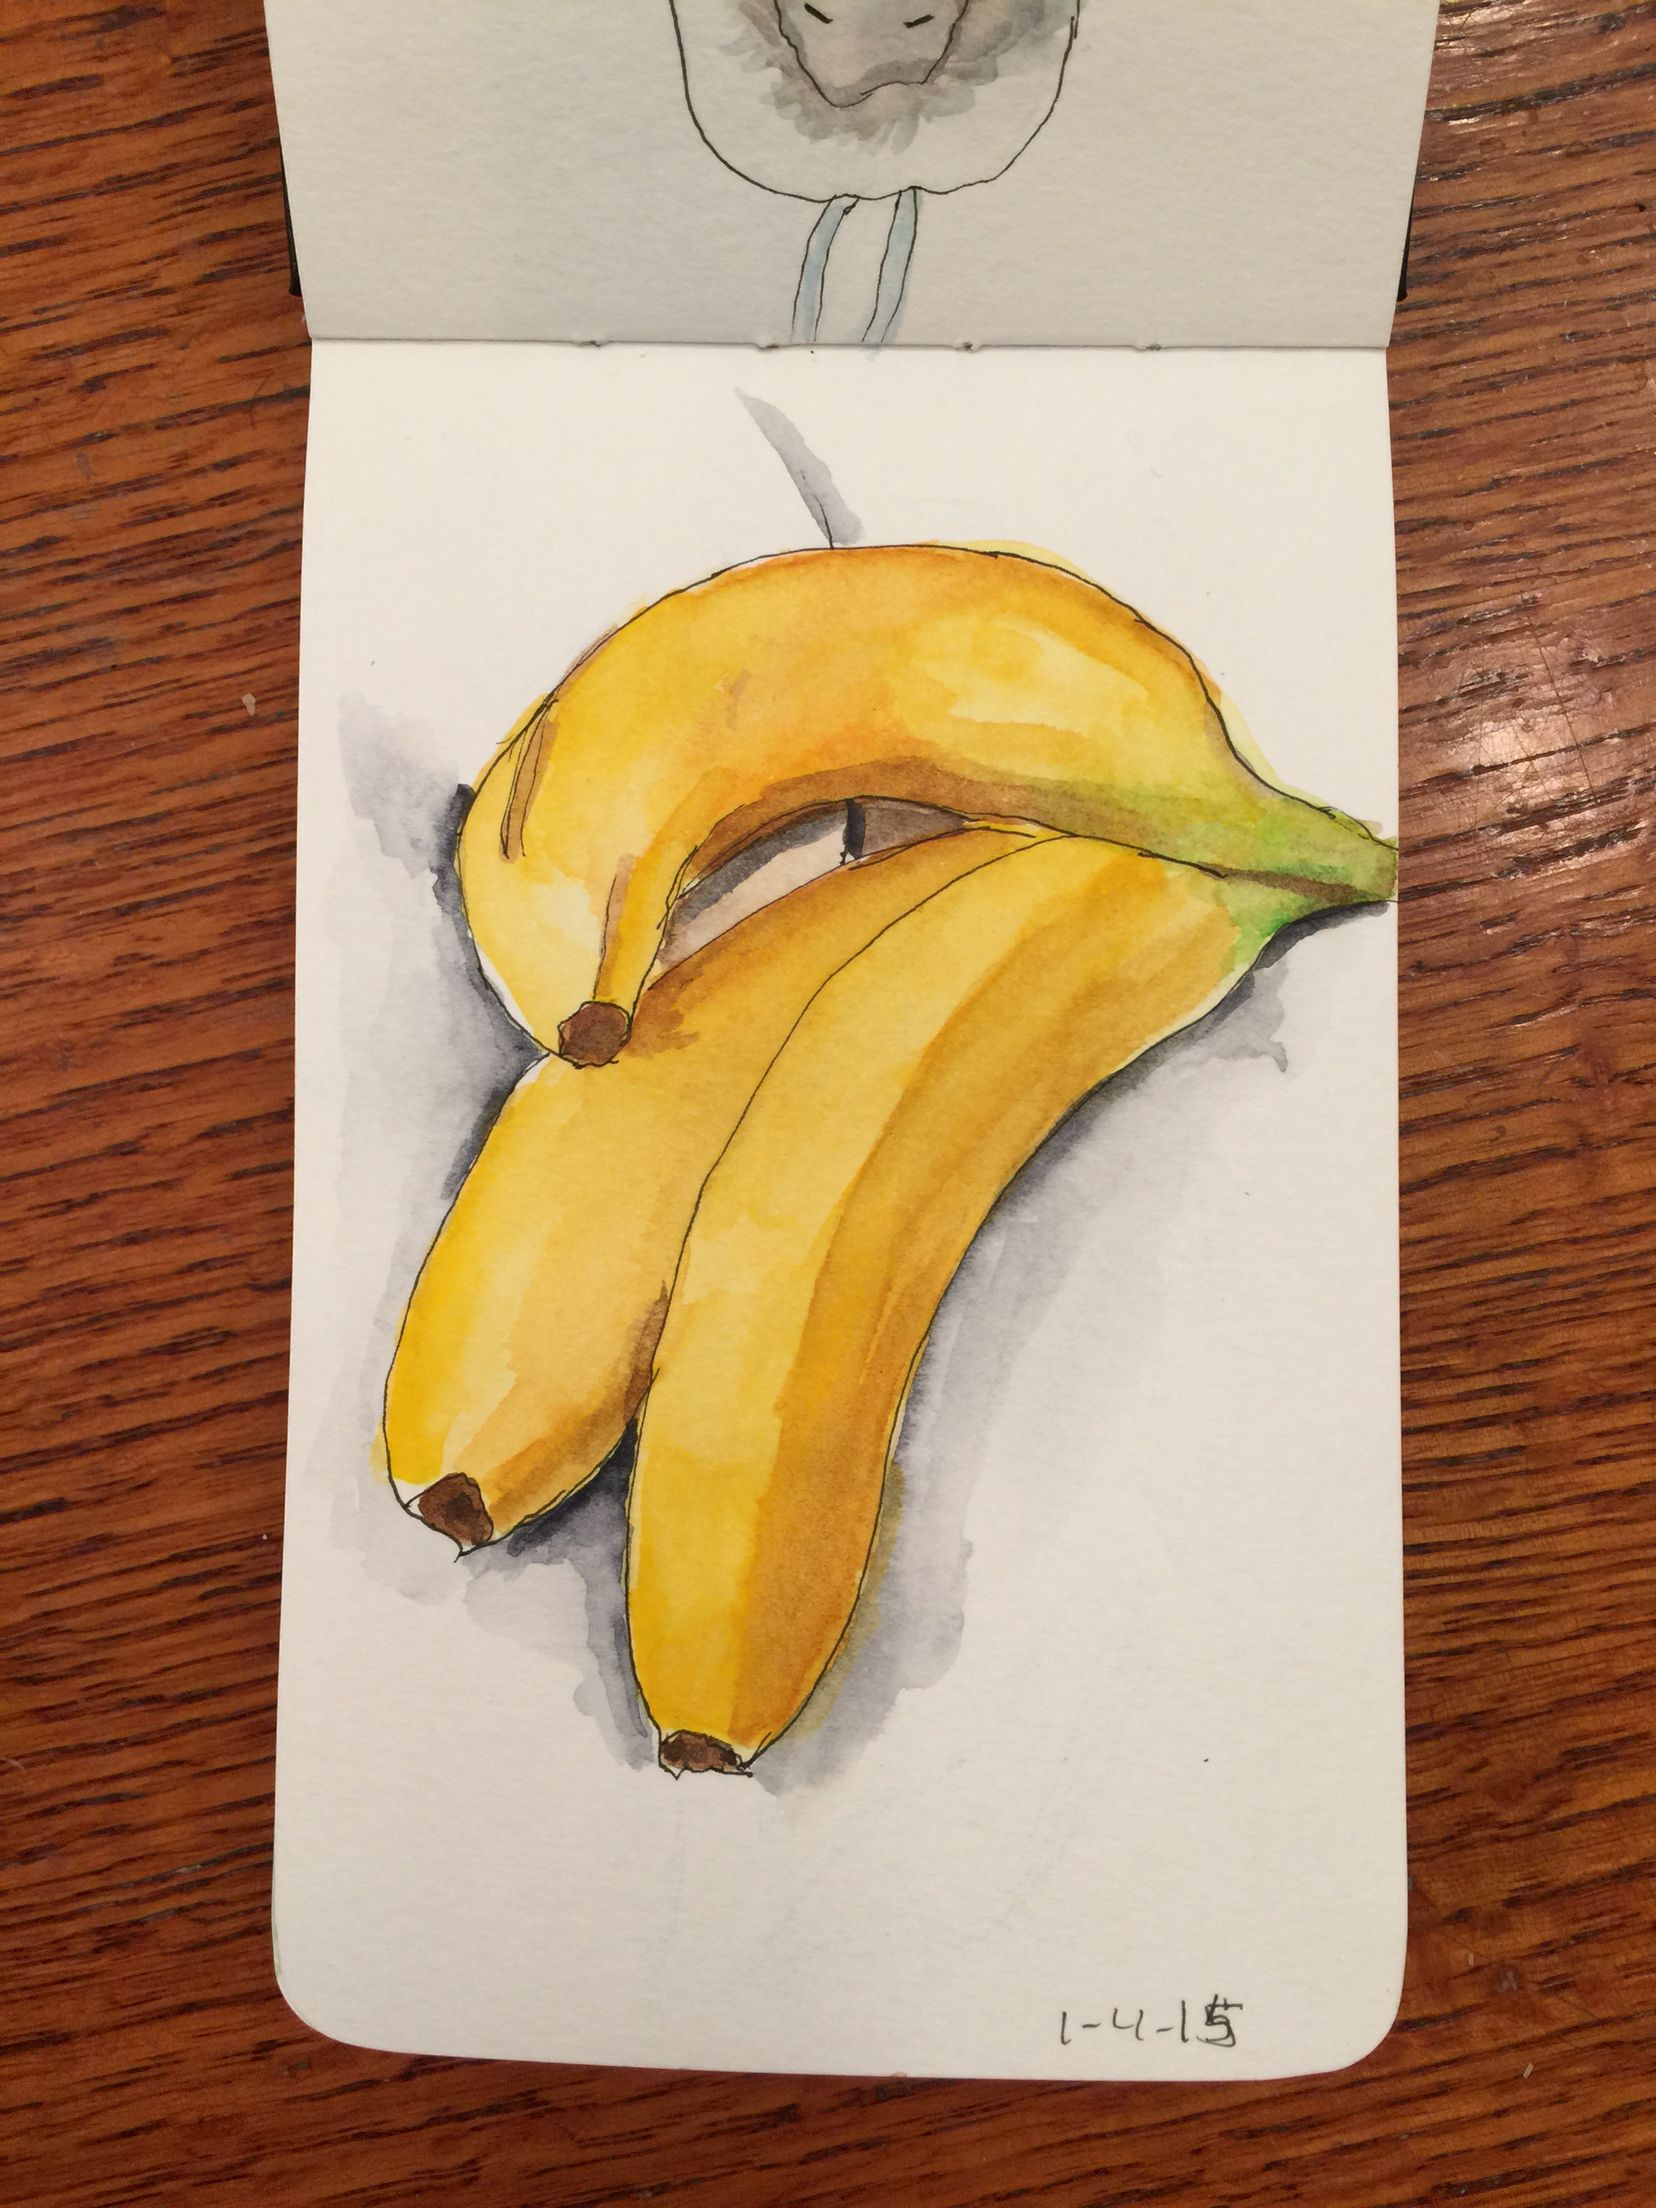 image free By kim bagwill in. Bananas drawing watercolor